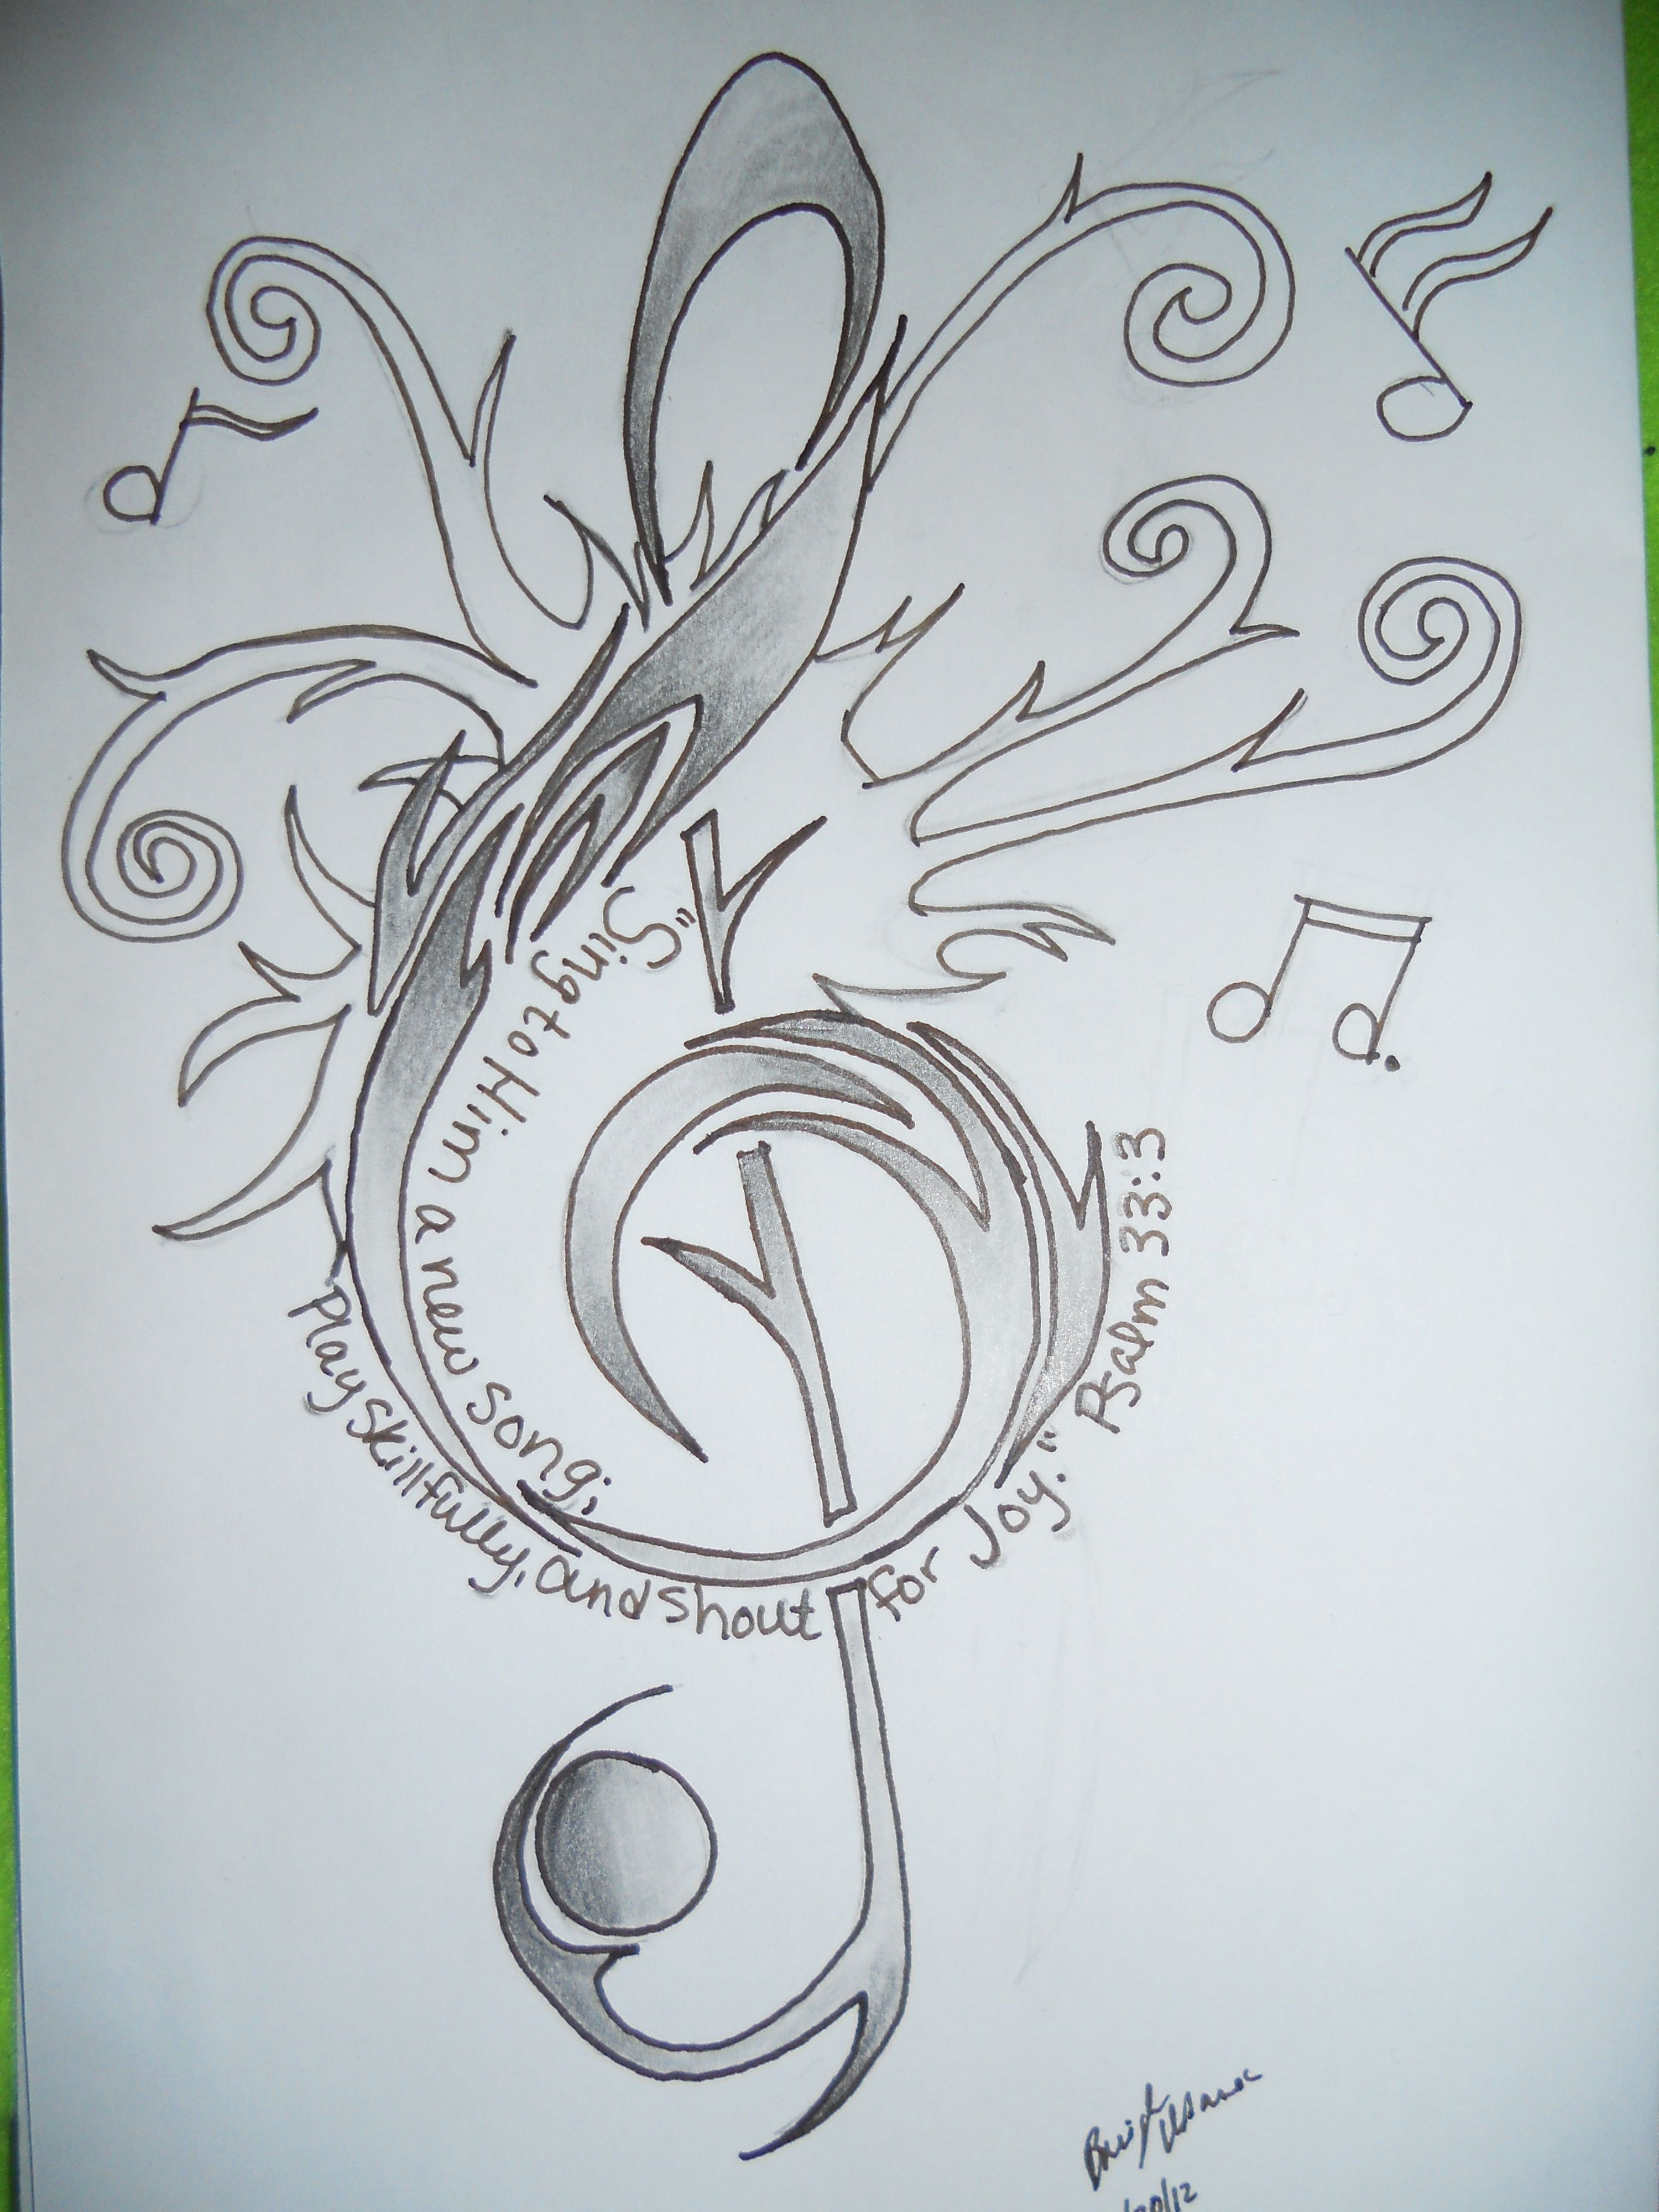 Coloring pages psalm 33 - Treble Clef Tattoo Design With Psalm 33 3 Bible Verse Drawing By Breigh Urbanec